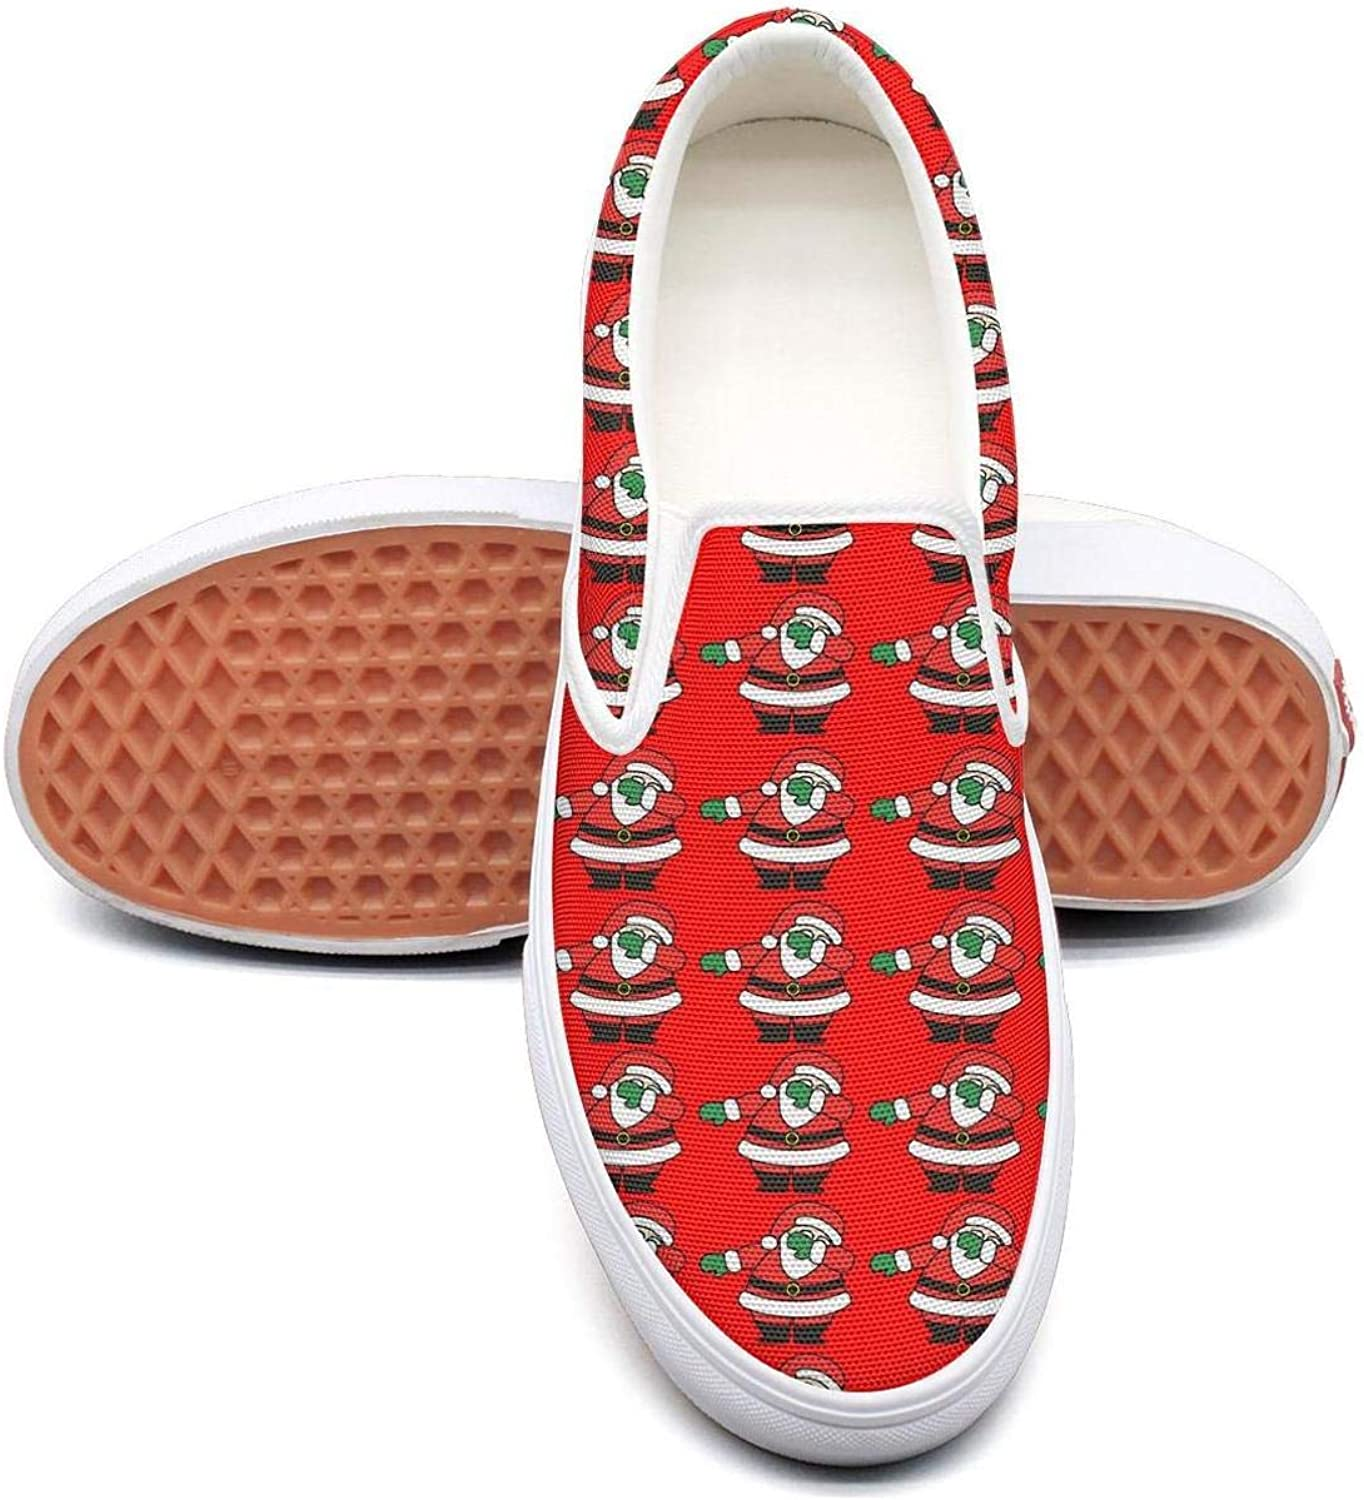 Refyds-es Dabbing Santa Womens Fashion Slip on Low Top Lightweight Canvas Sneakers